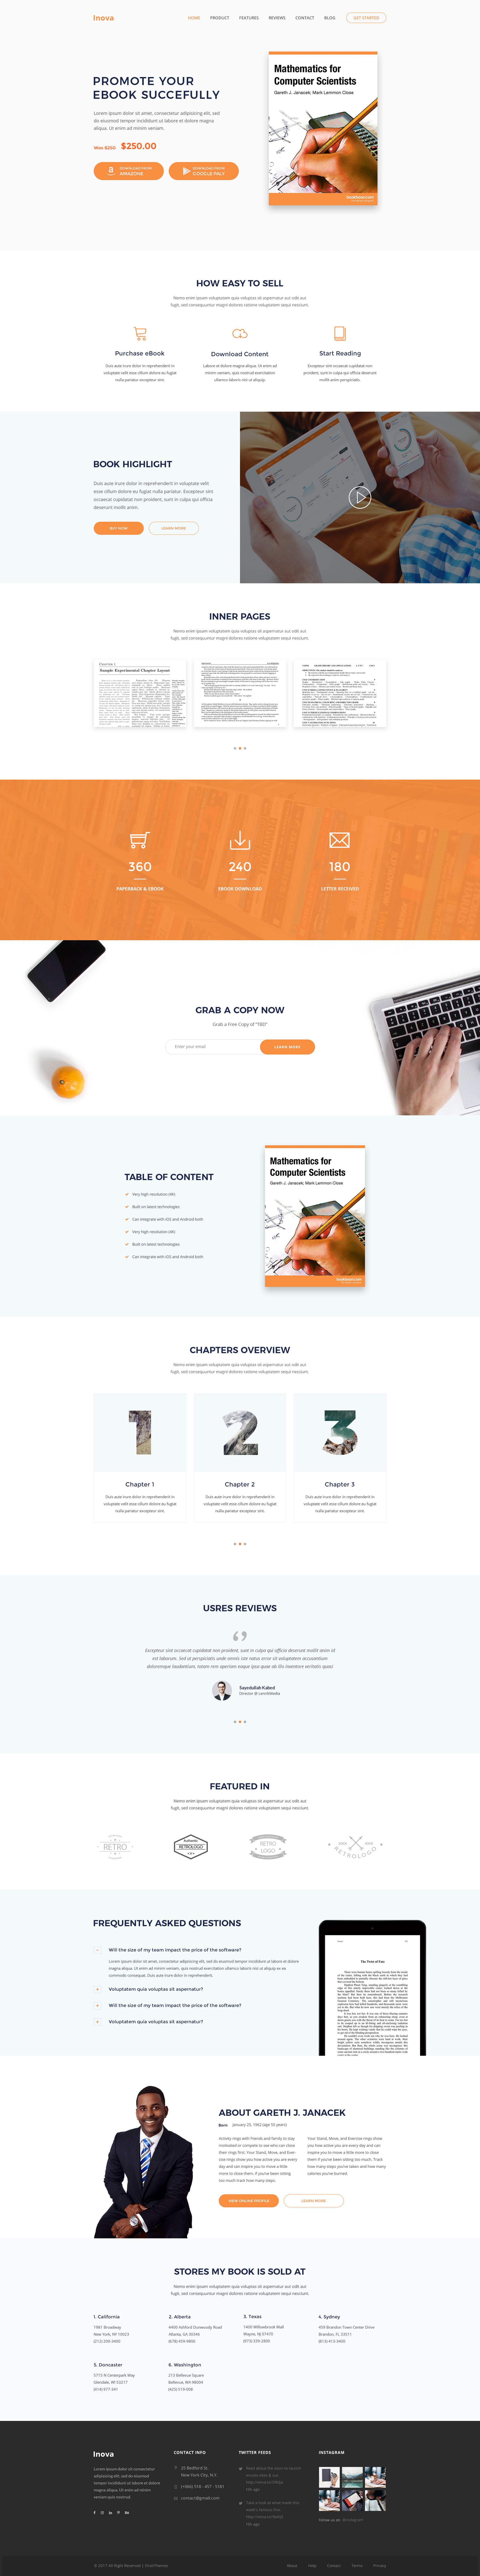 Inova Product Saas App Startup Marketing Book Landing Page File Type Photoshop Psd Image Size 3400 X 2800 Resolution Template